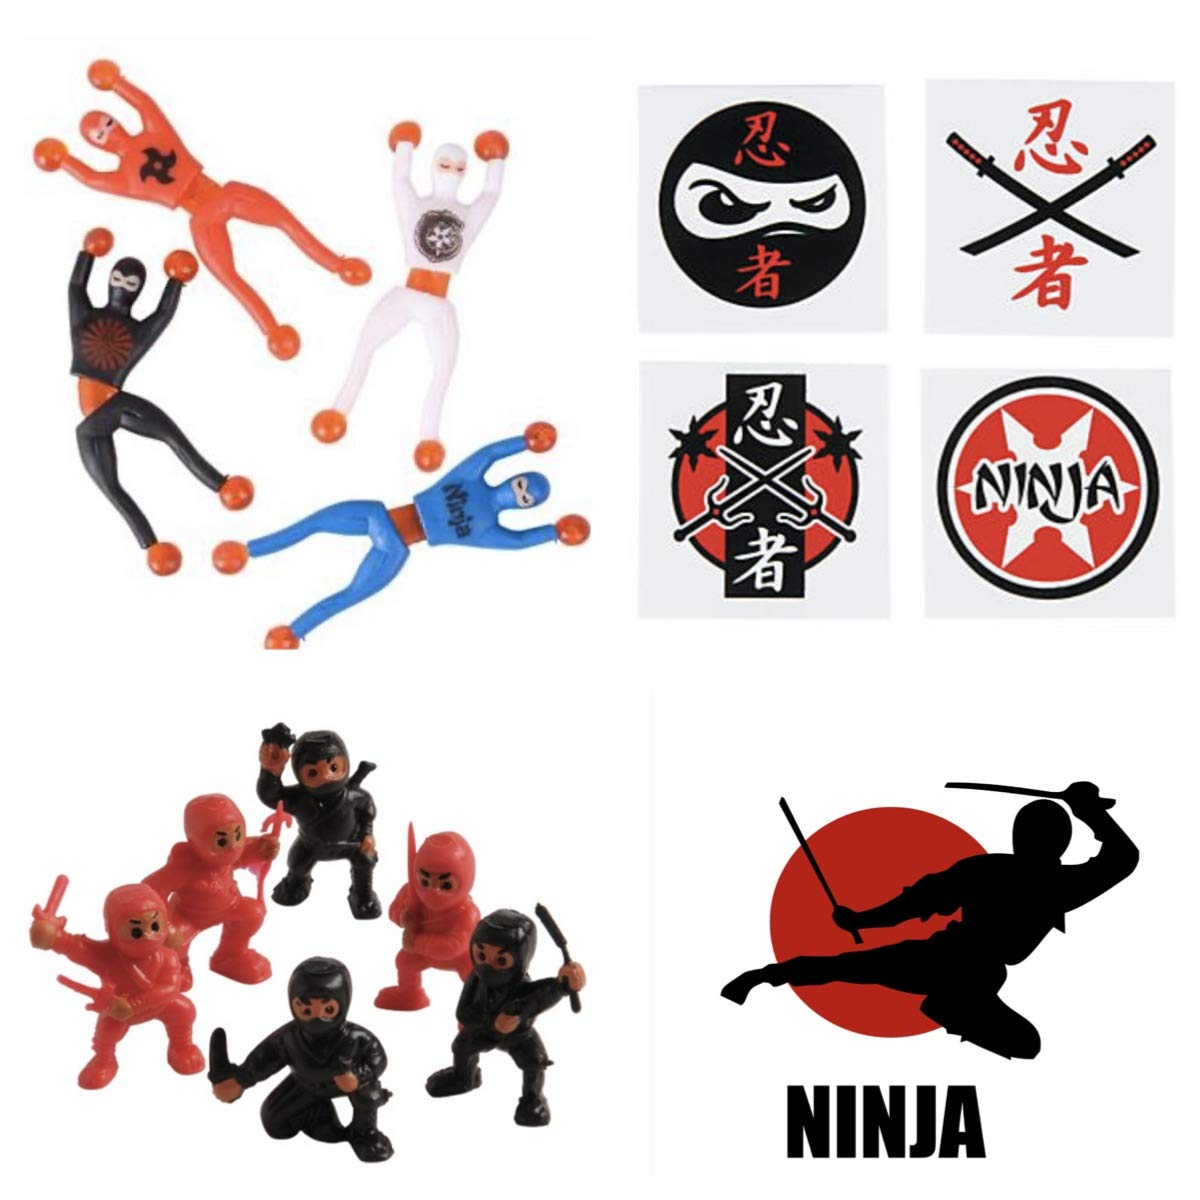 Just4fun Ninja Warrior Party Favors - 36 Tattoos - 12 Figures - 12 Wall Crawlers & 24 Stickers - Martial Arts - Karate Classroom Prizes